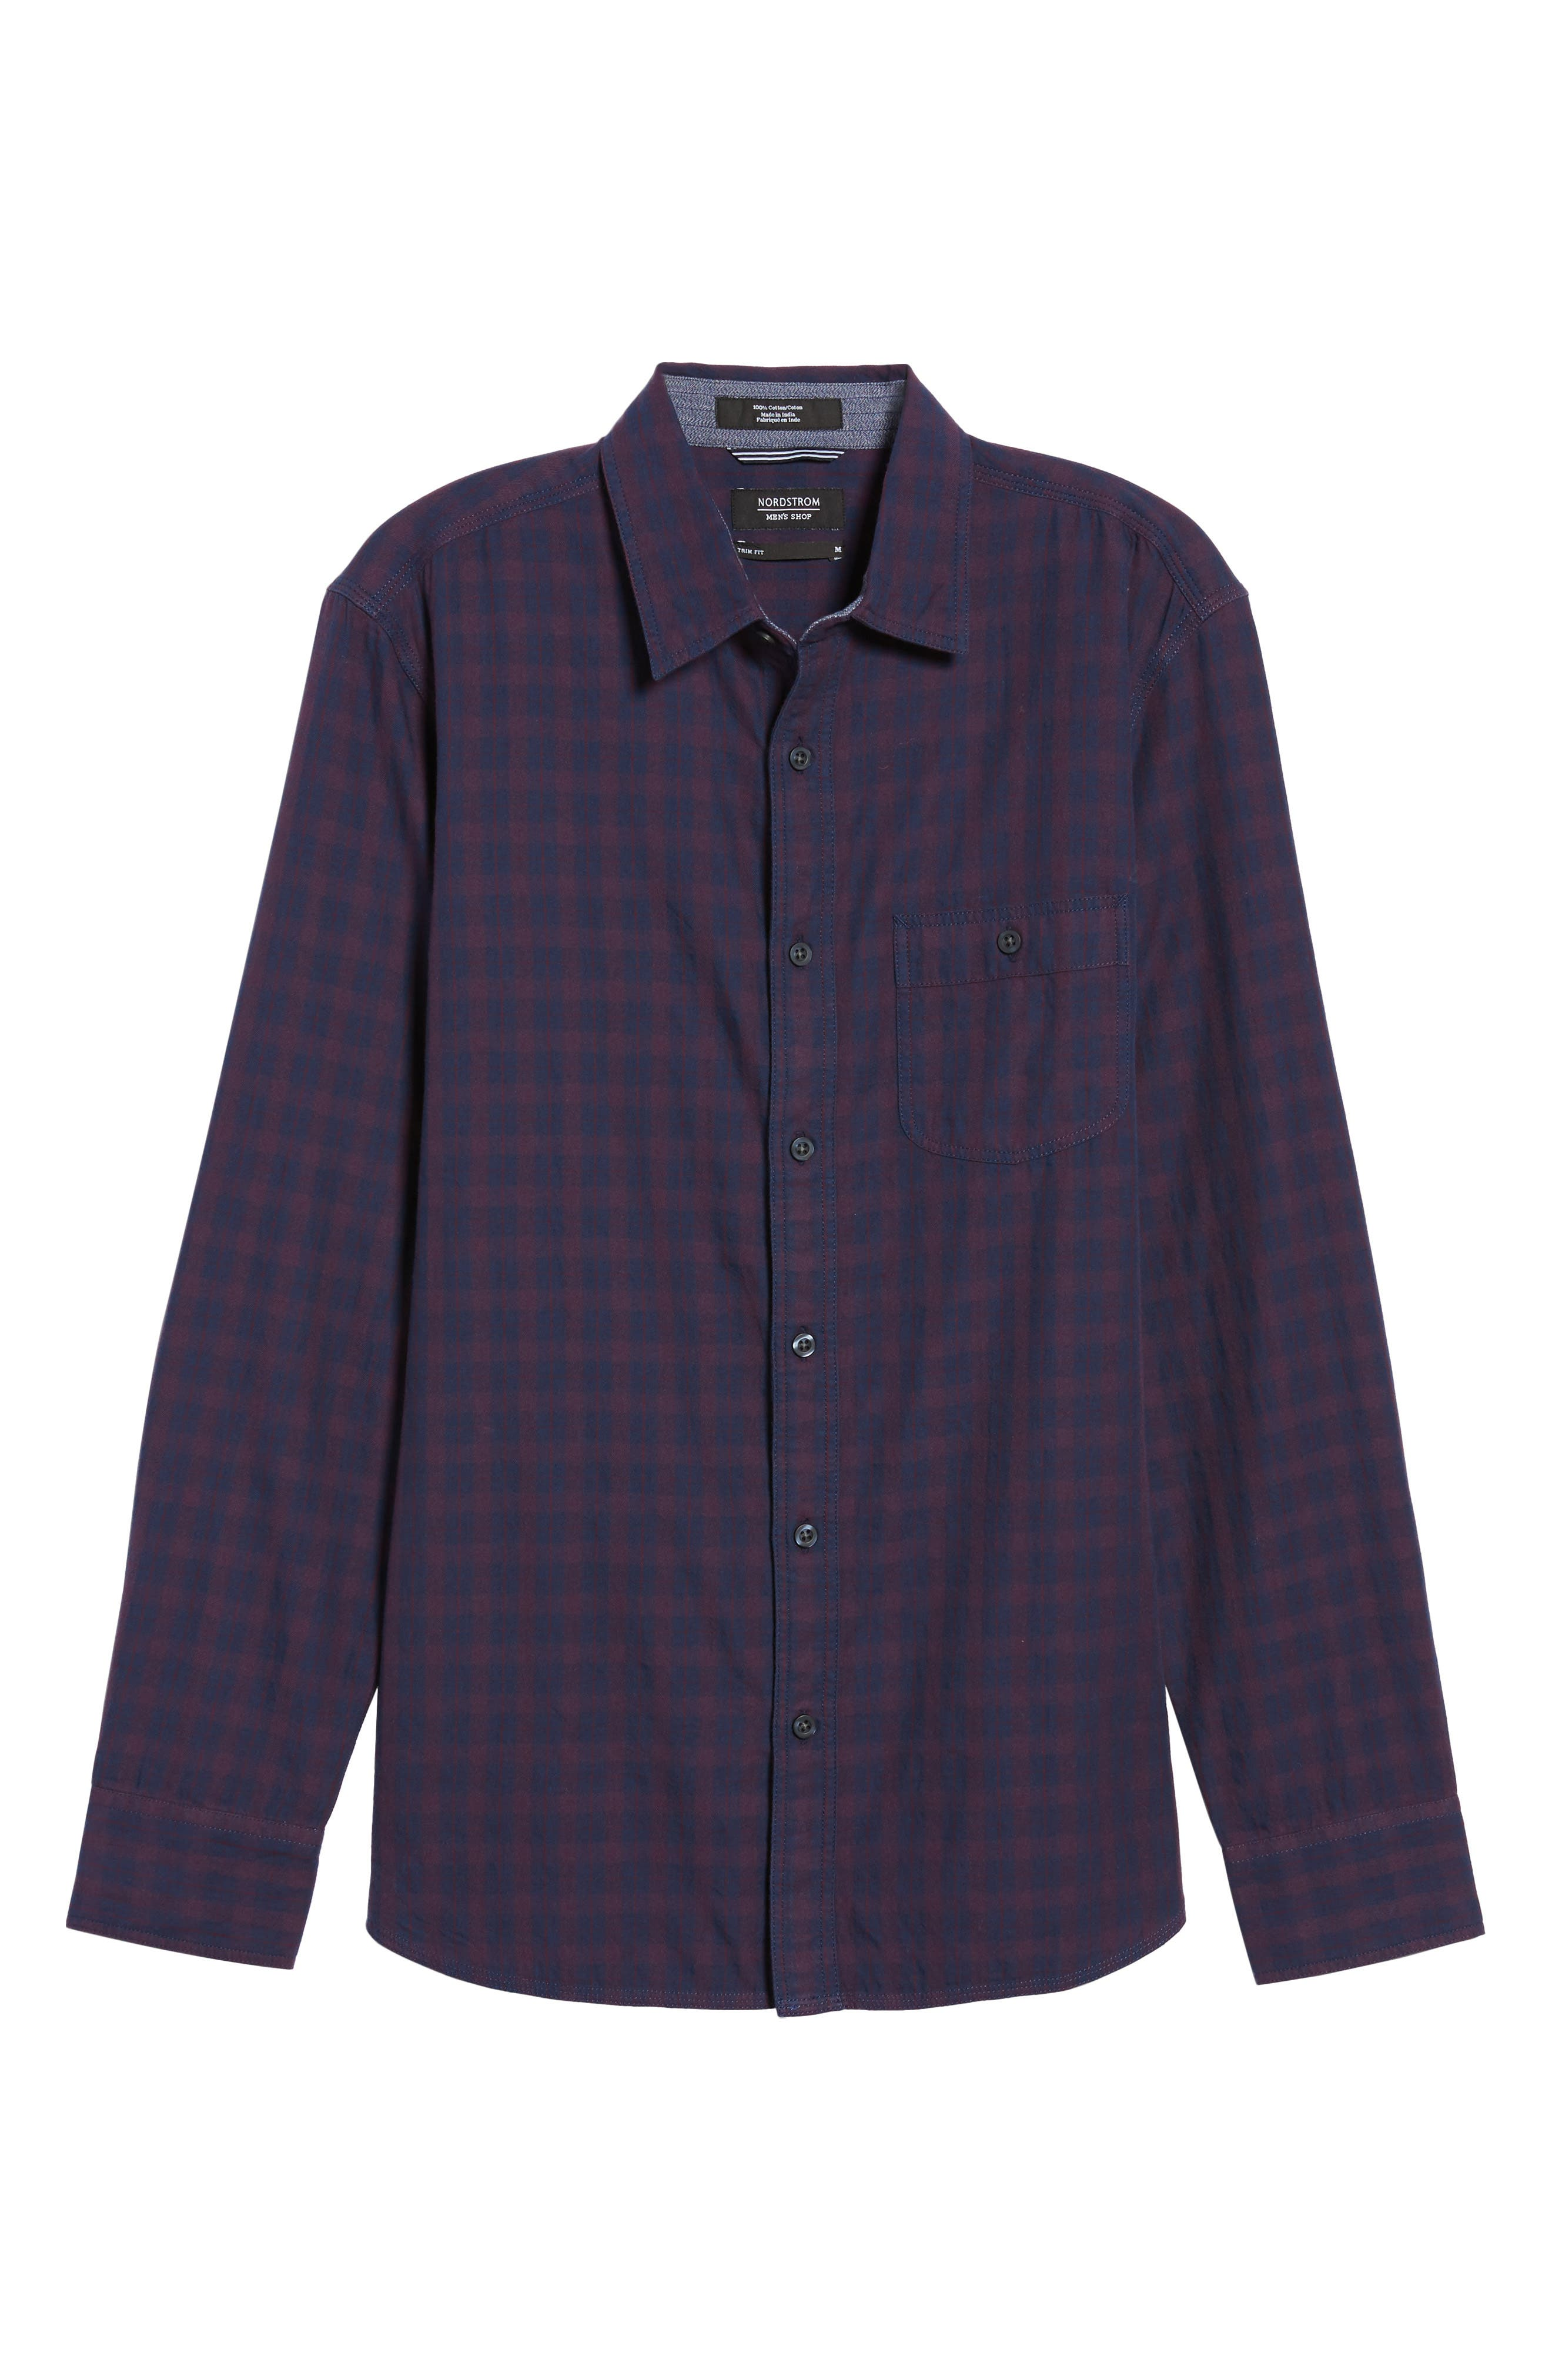 Slim Washed Fit Sport Shirt,                             Alternate thumbnail 6, color,                             Navy Iris Burgundy Stem Check